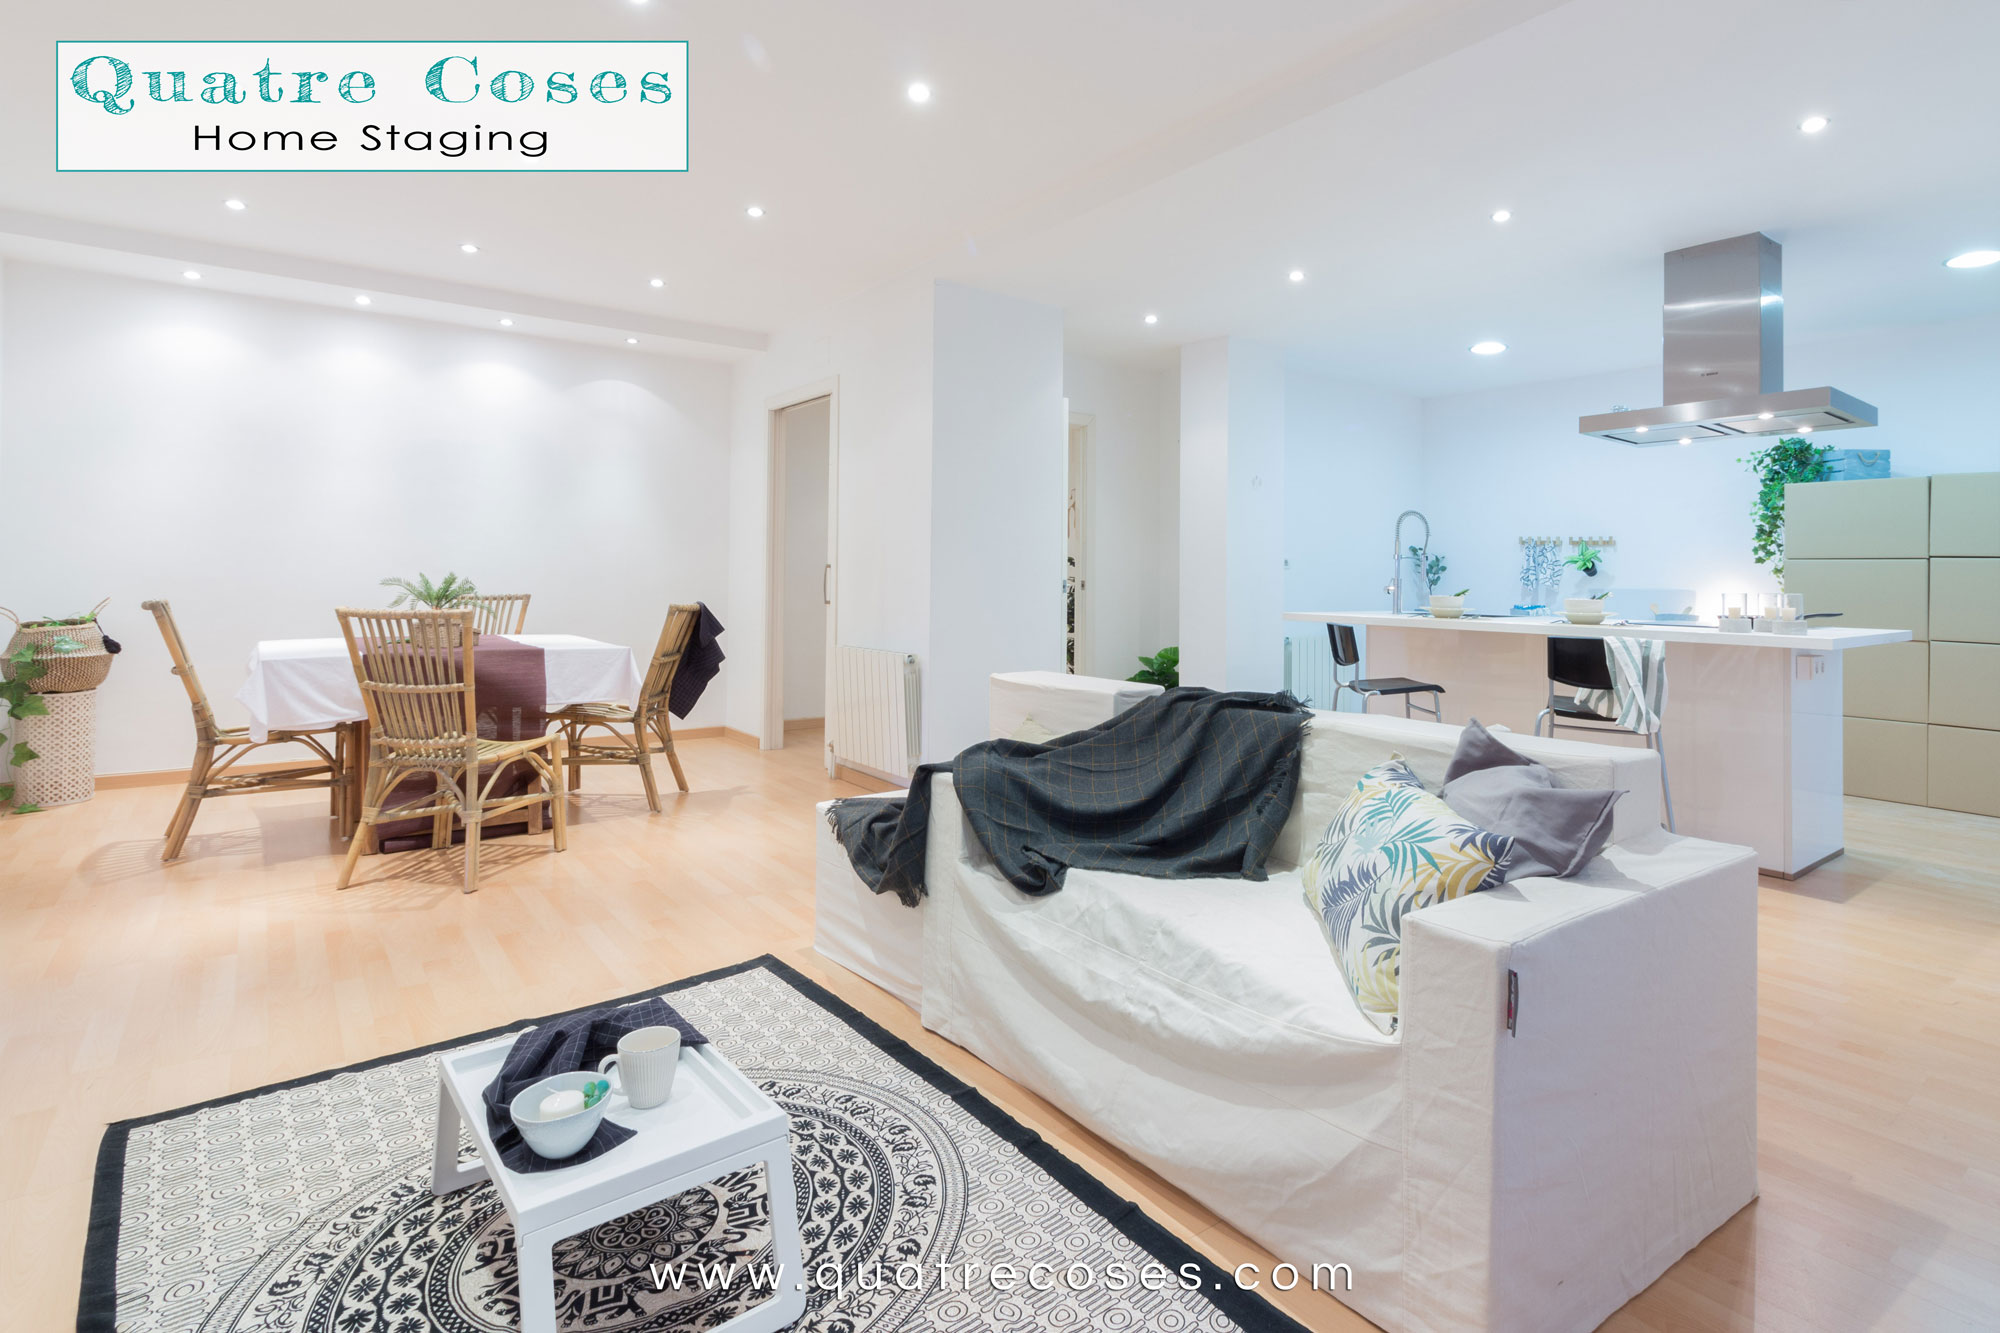 Home Staging Salon Quatre Coses Home Staging En Calle Anoia